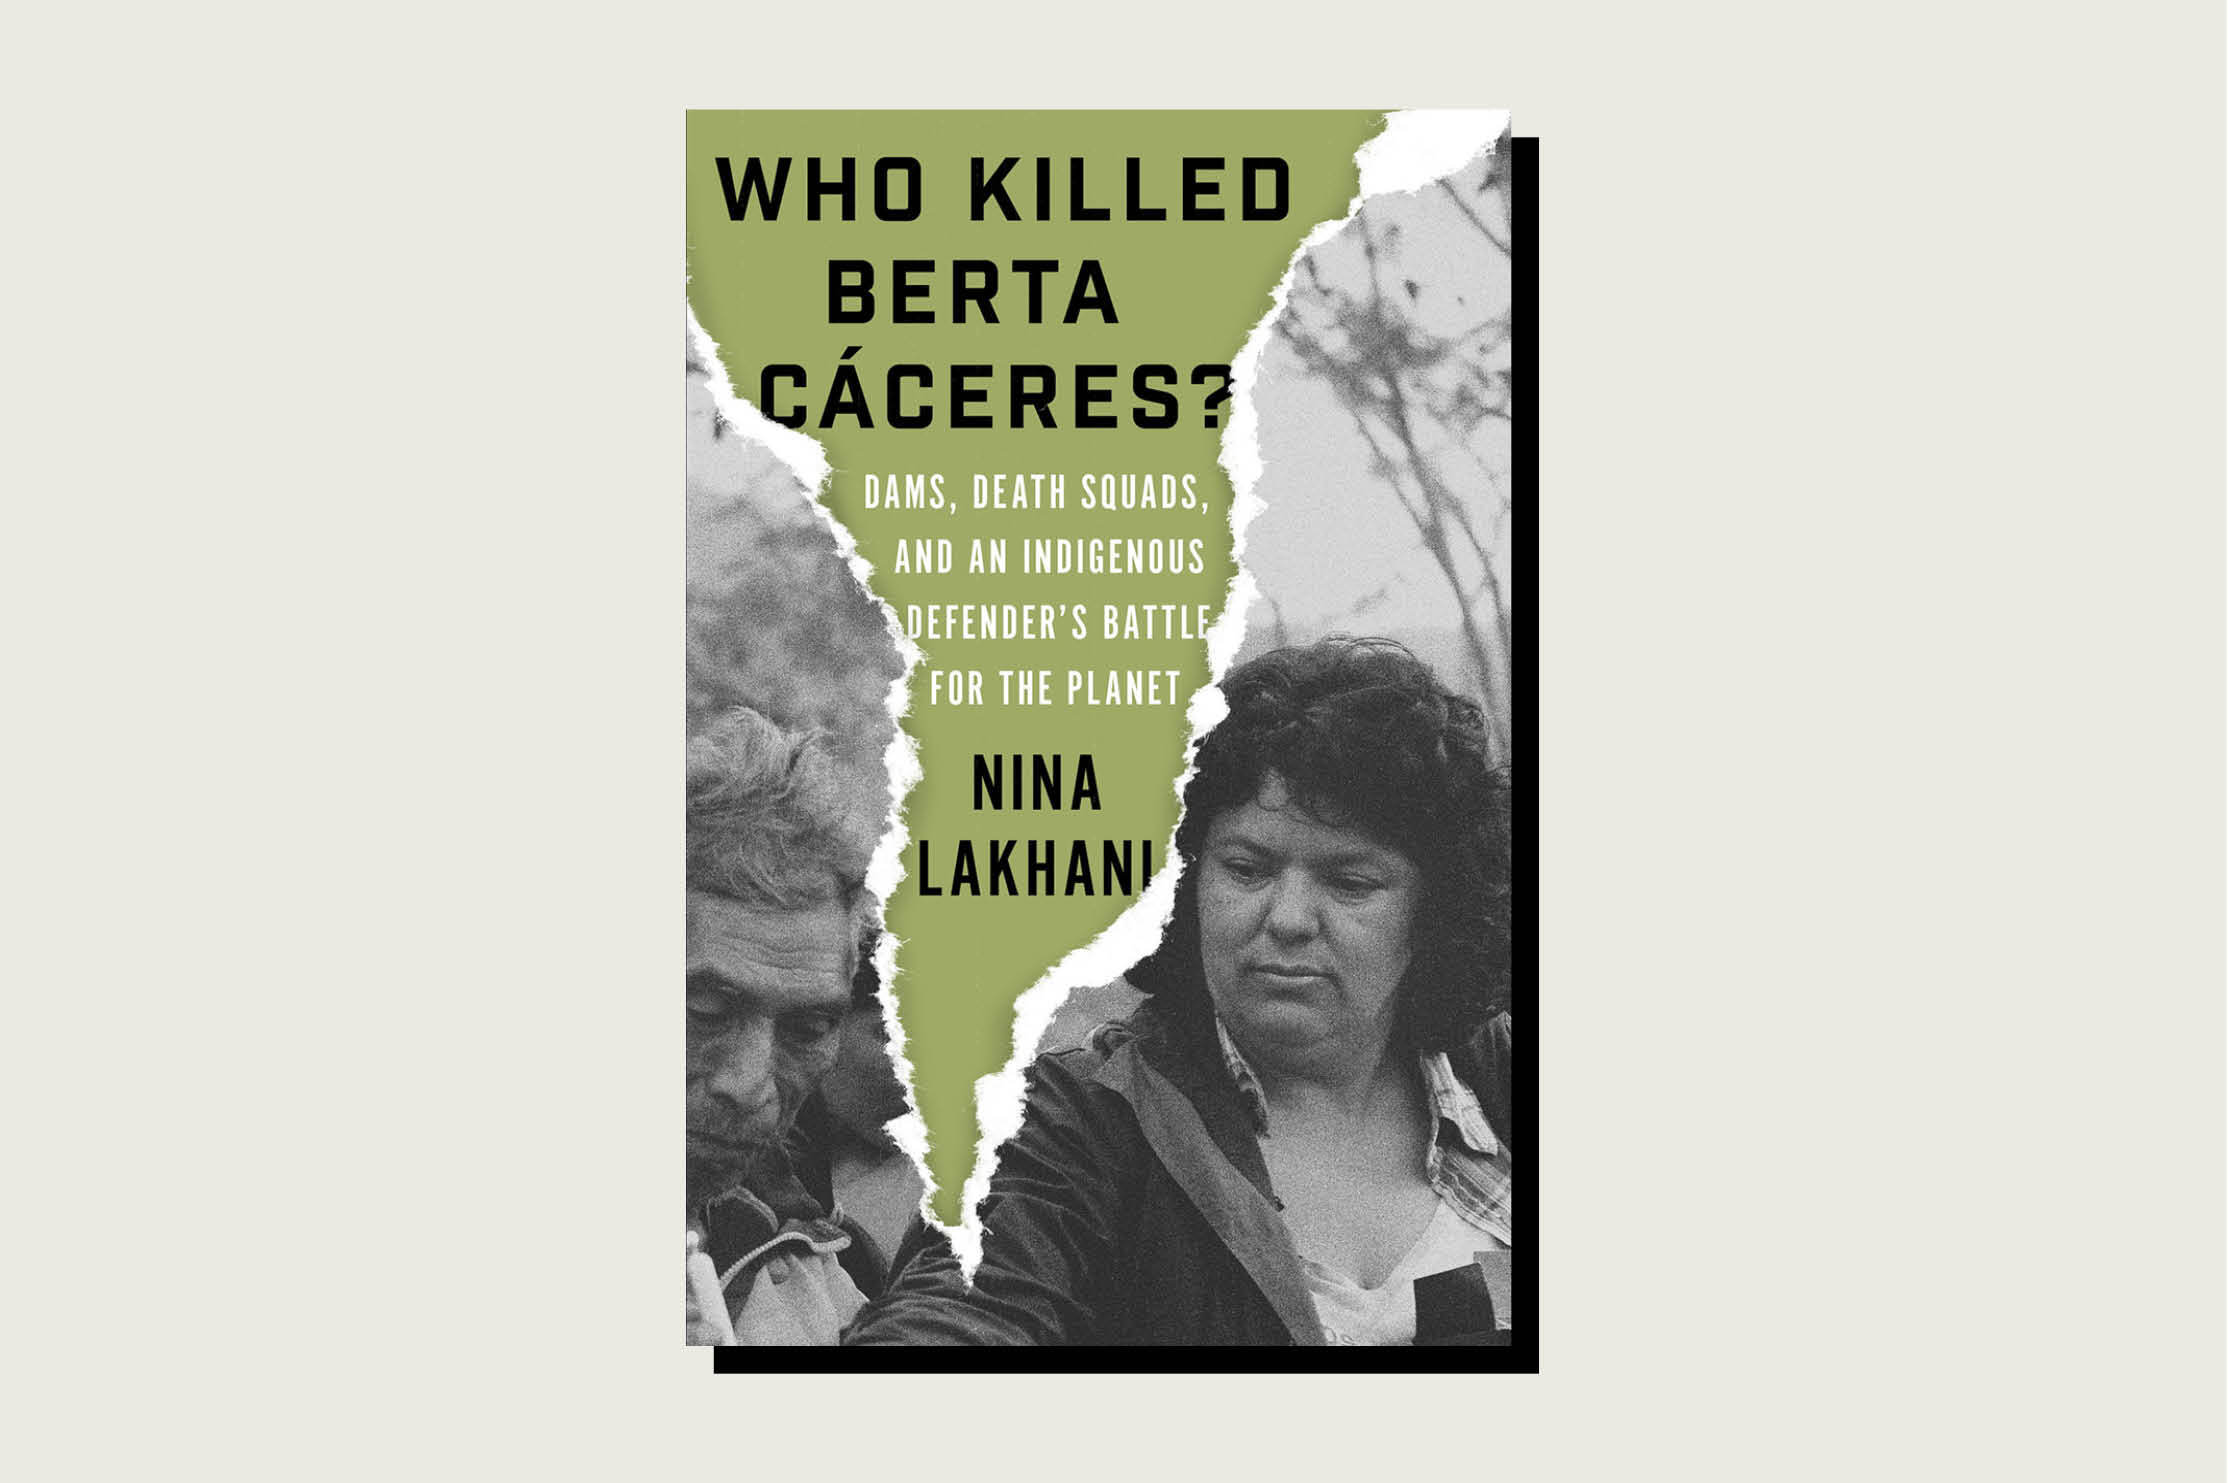 Nina Lakhani, Who Killed Berta Cáceres? Dams, Death Squads, and an Indigenous Defender's Battle for the Planet, Verso, 320 pp., , June 2020